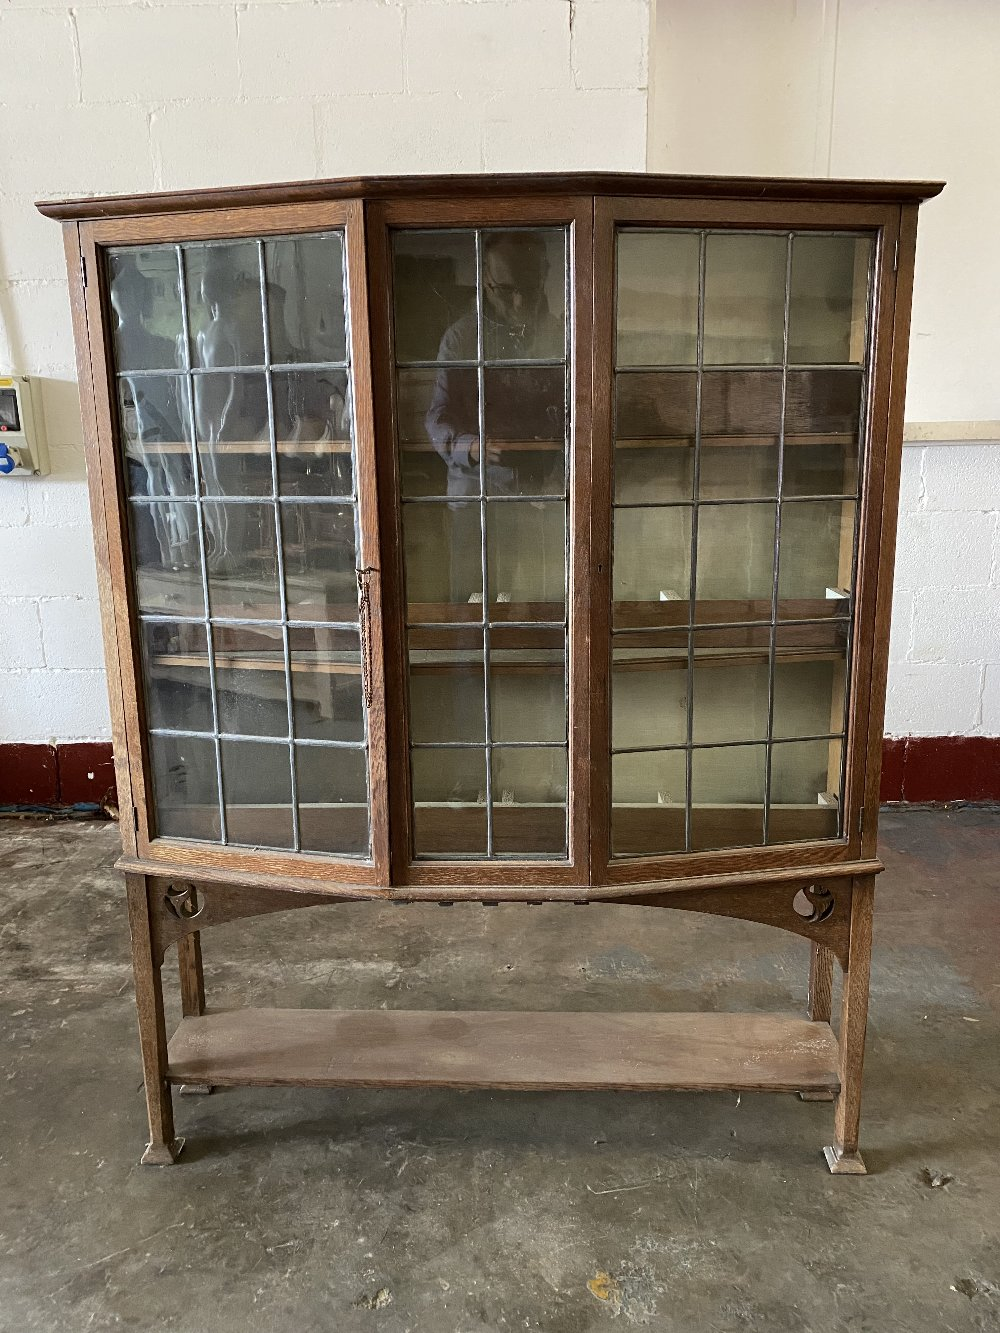 ARTS & CRAFTS STYLE BOOKCASE CUPBOARD with angular bow front and leaded glass doors, 147cms H, - Image 2 of 5